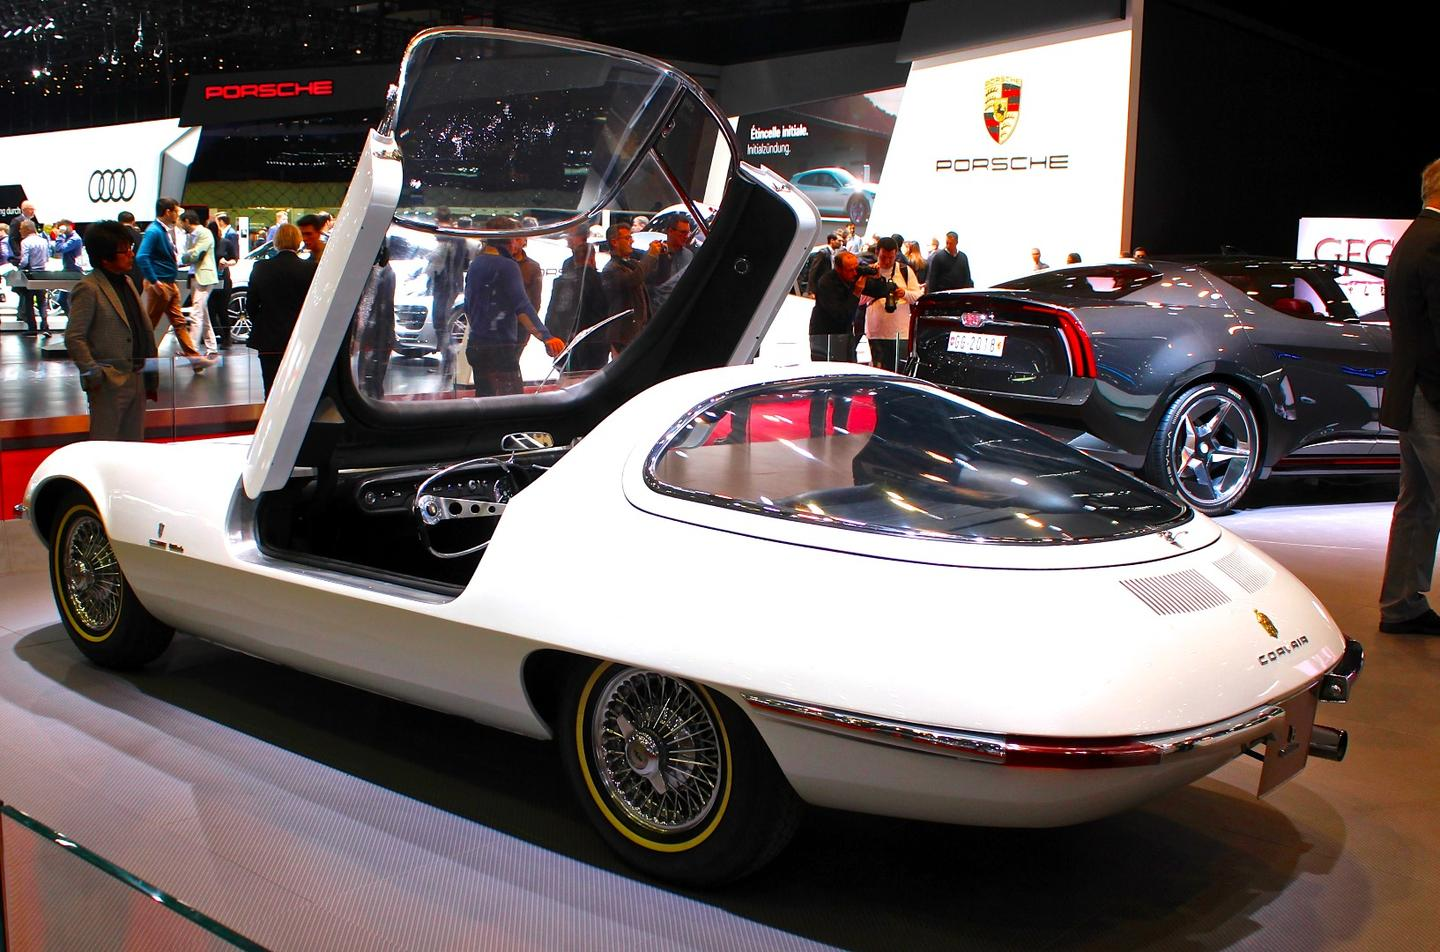 The design for this 1963 Chevrolet Corvair Testudio Bertone was one of Giorgetto Giugiaro's first works